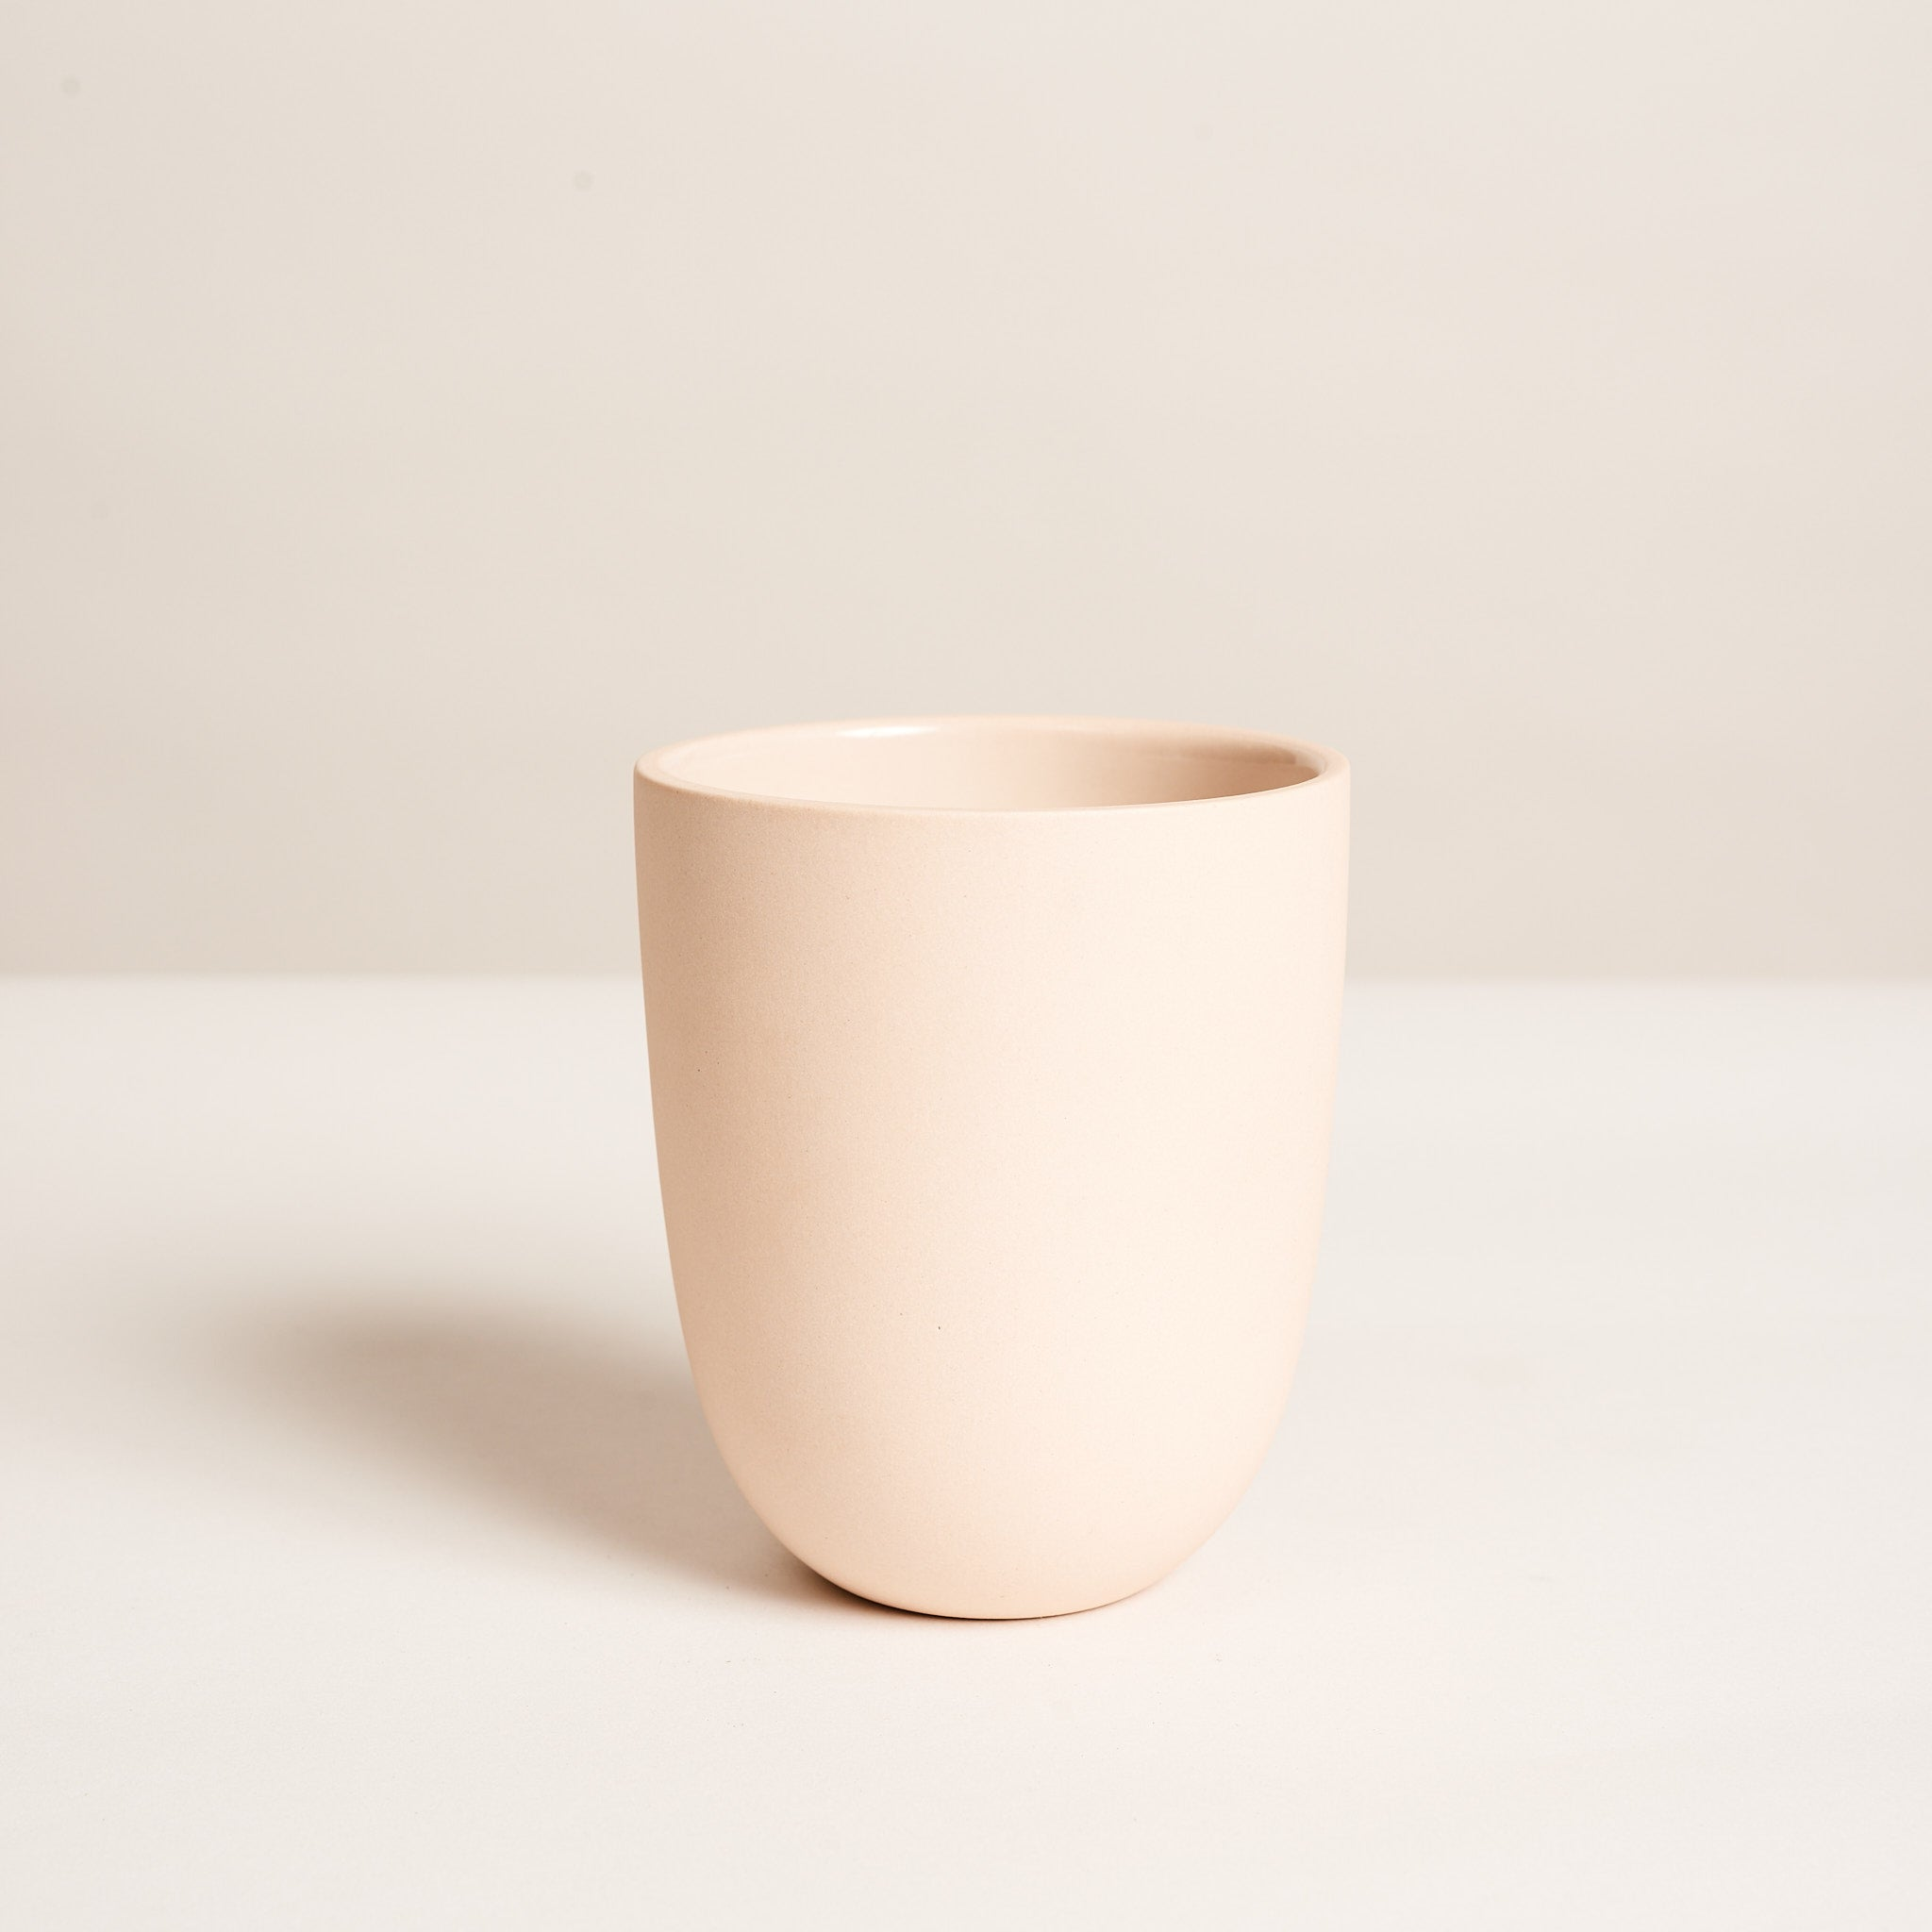 "Small tumbler in blush slipcast from a hand-thrown design with a raw, sanded exterior and interior gloss lined glaze for easy cleaning.  4.5"" high and 3.5"" diameter at opening. 14 oz capacity."